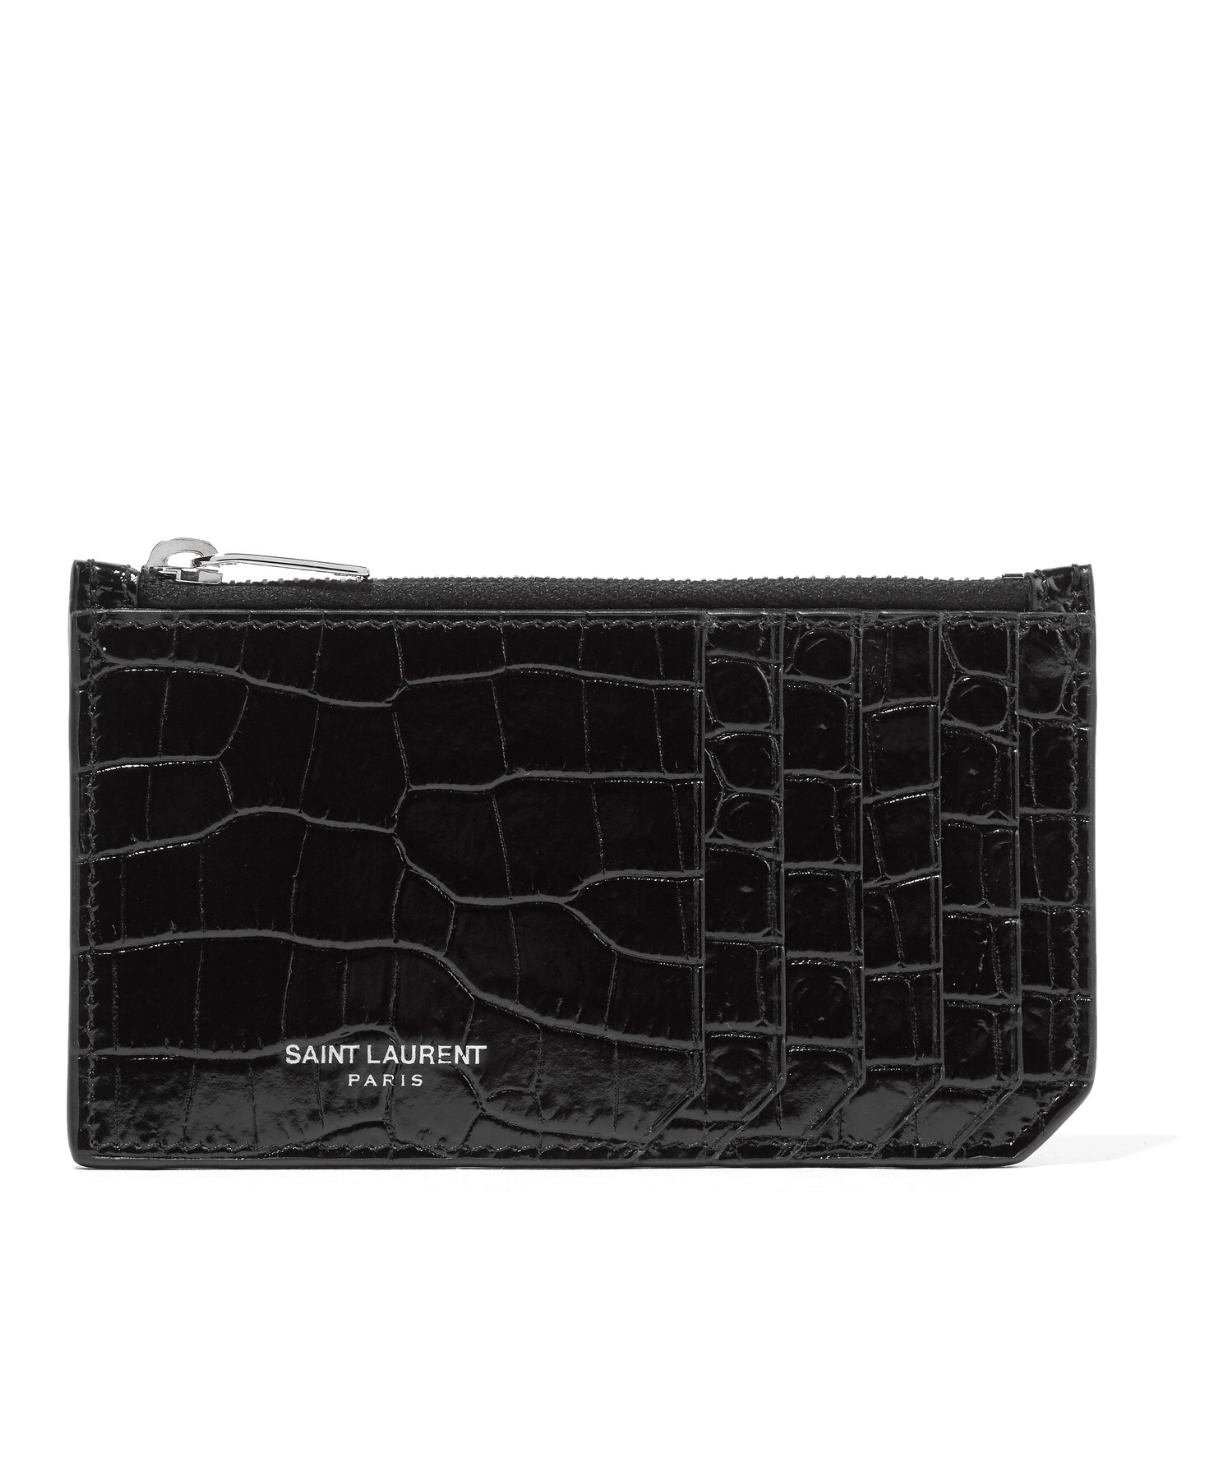 Saint Laurent Croc-Effect Leather Cardholder - 195€